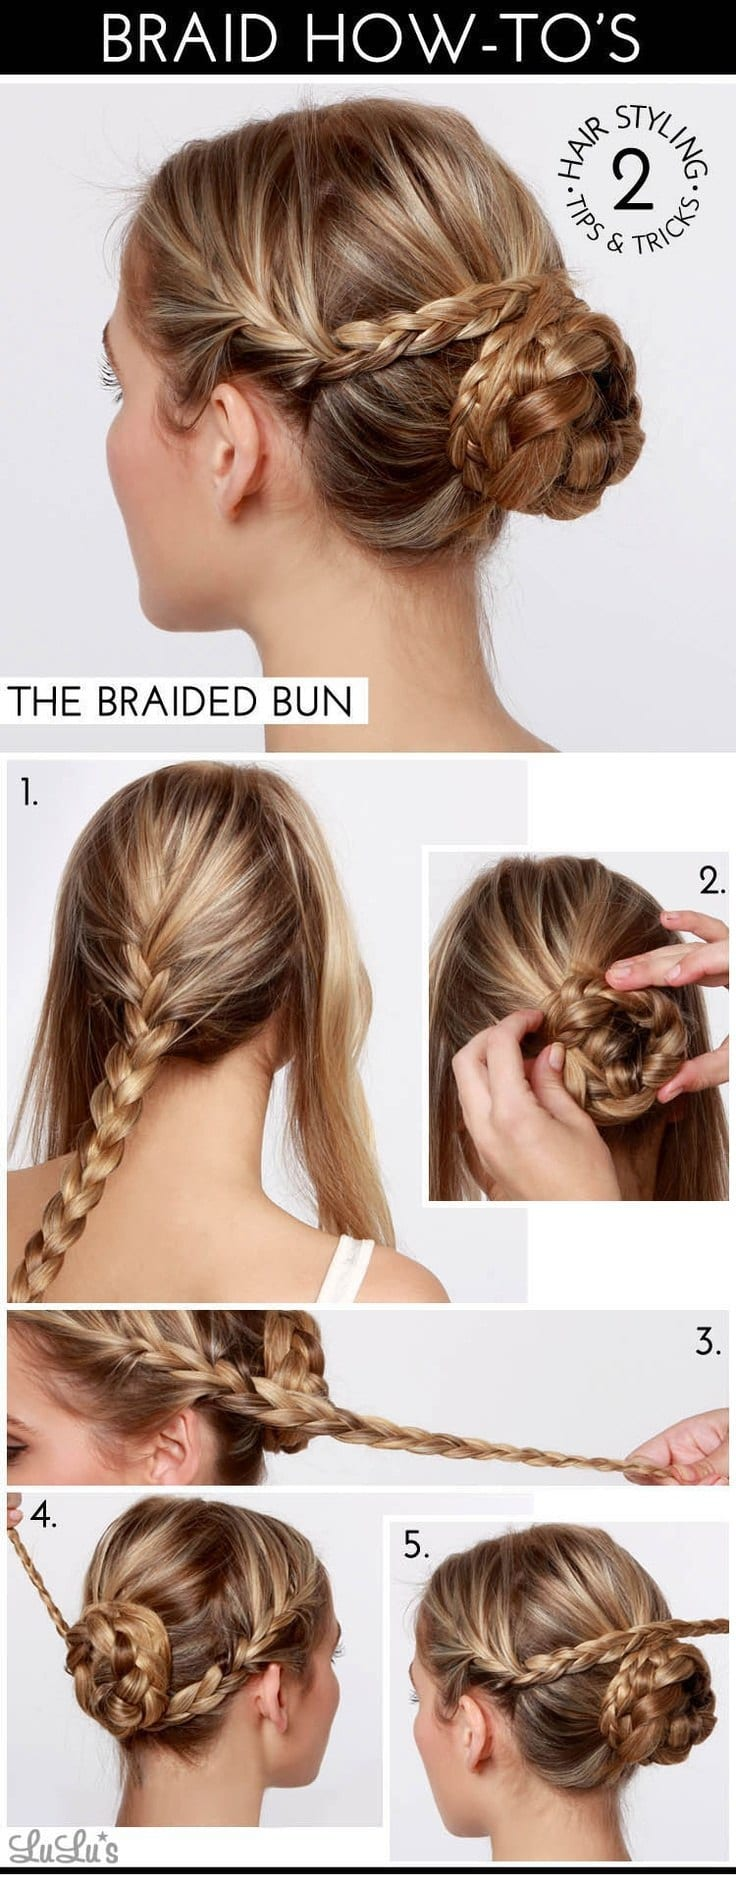 Easy-Braided-Bun-Tutorial 20 Cute and Easy Braided Hairstyle Tutorials